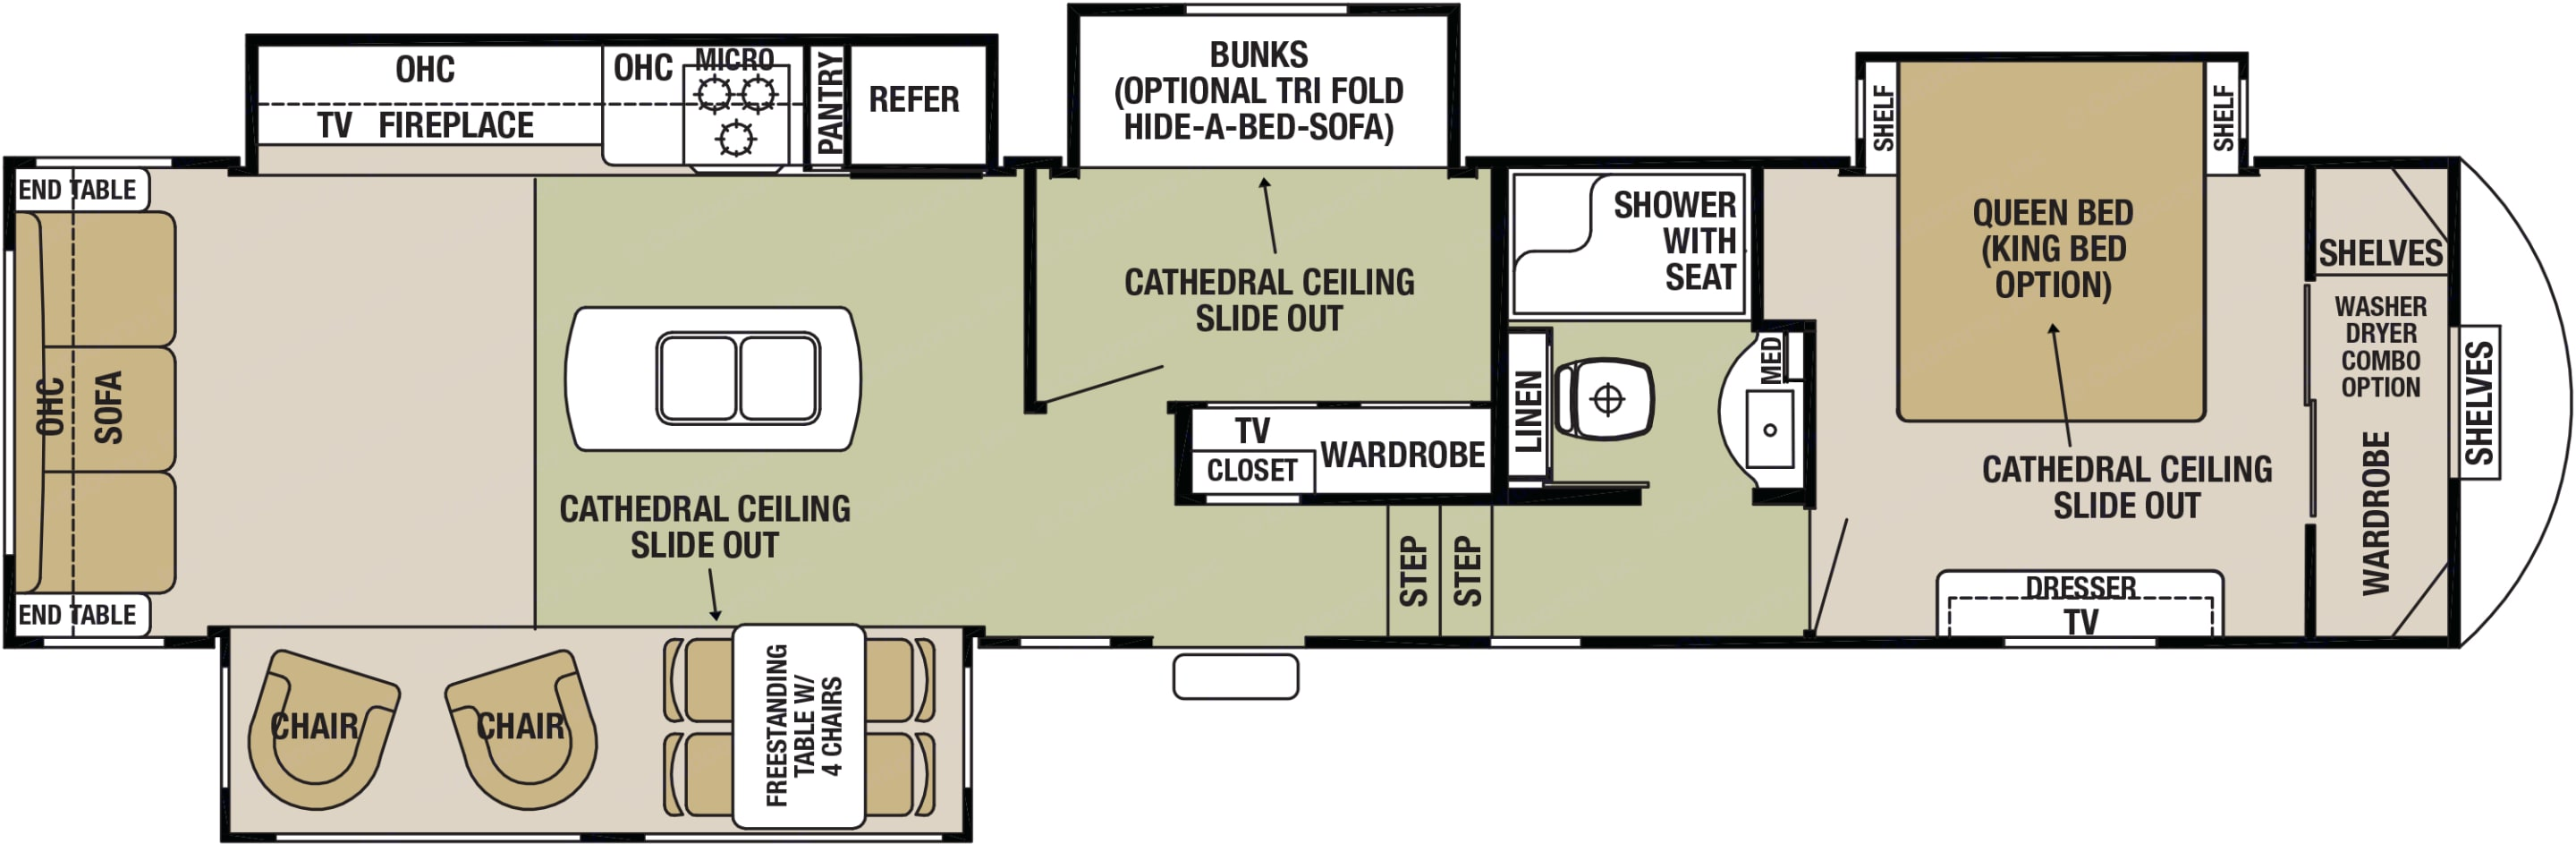 2 bedroom layout. Sleeps 8: 2 in the Master Bedroom, 2+2 (2 small kids on bunk bed) in the second bedroom, and 2 on fold-out sofabed in living room.. Forest River Cedar Creek Fifth Wheel 2016